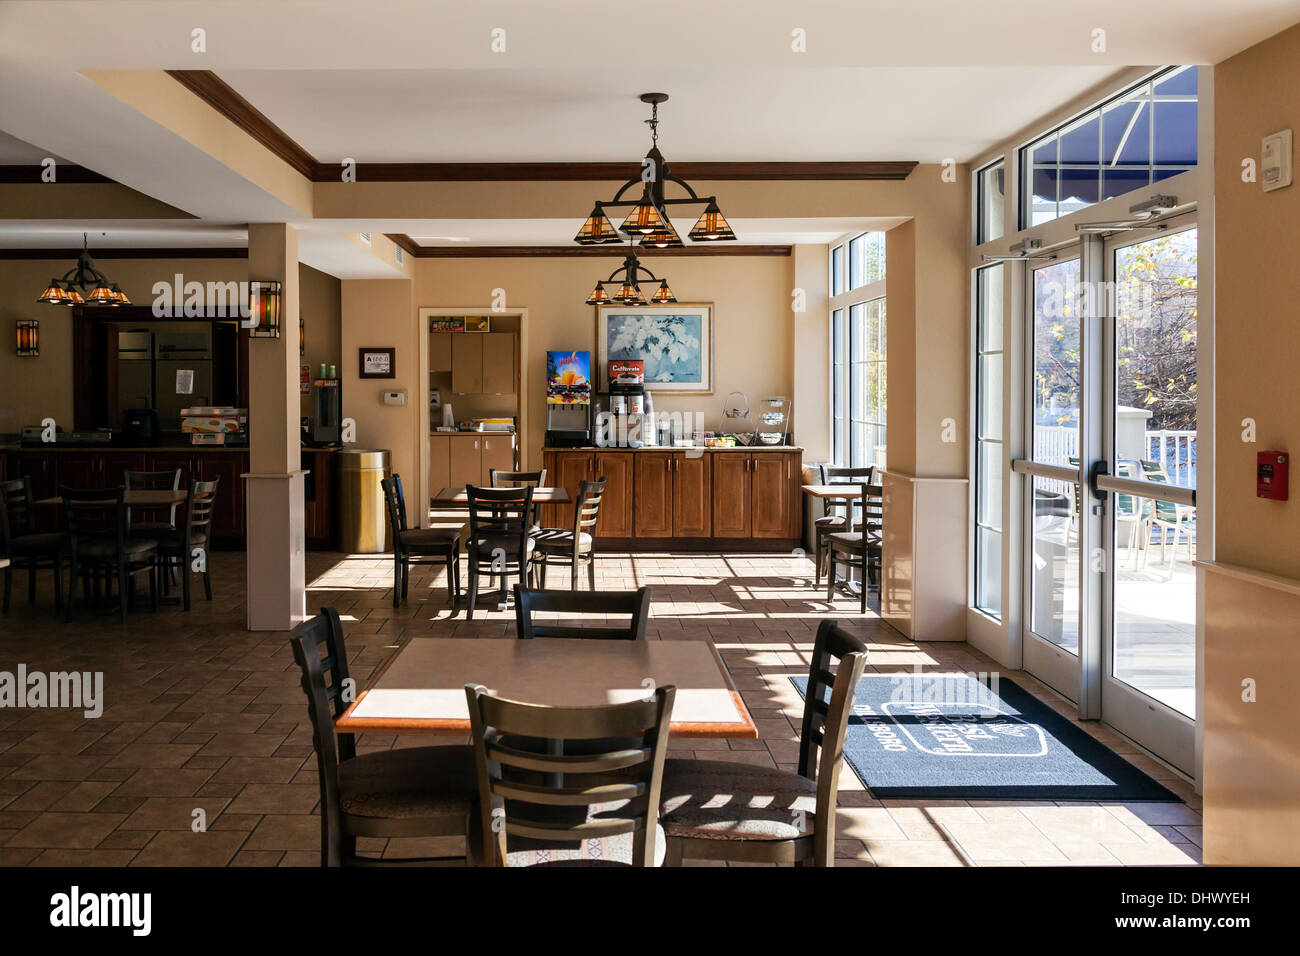 Breakfast Bar Dining Room In Best Western Plus River Escape Inn And Suites On Bank Of